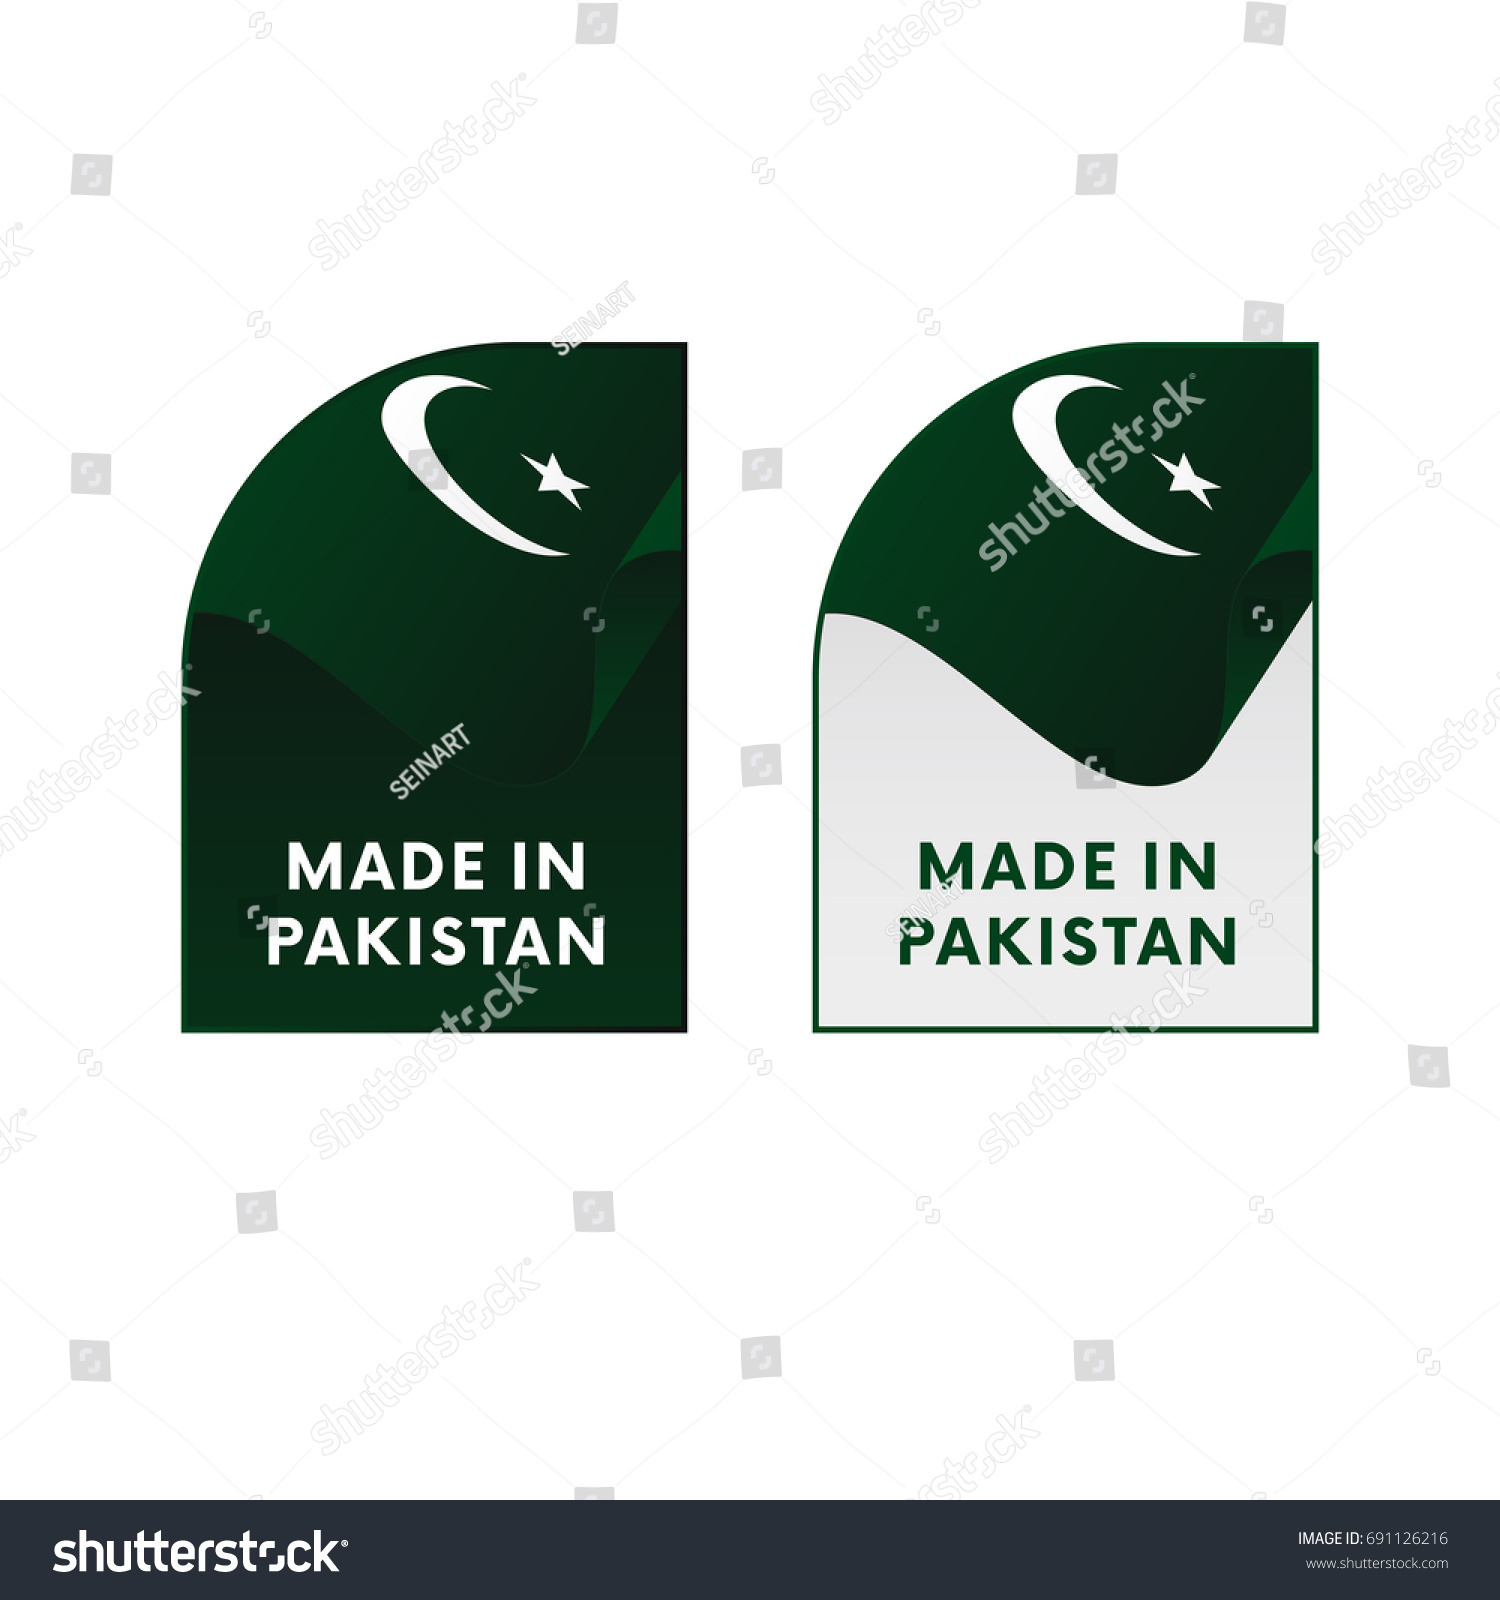 Stickers made in pakistan vector illustration